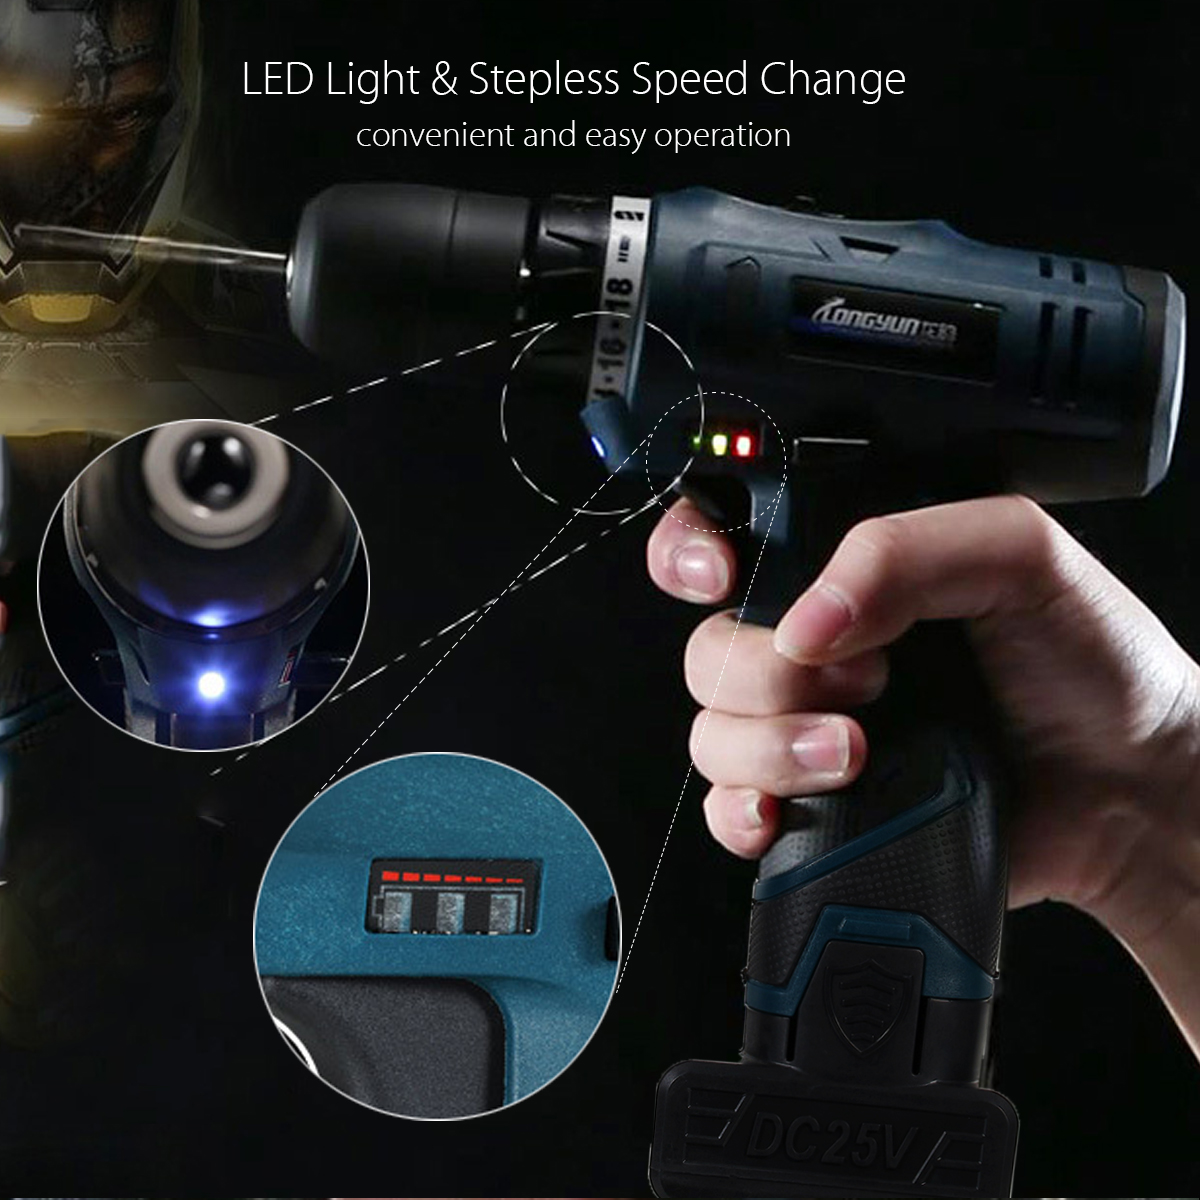 Lomvum 25V Li-Ion Cordless Electric Hammer Power Drills Driver Hand Kit 2 Speed LED